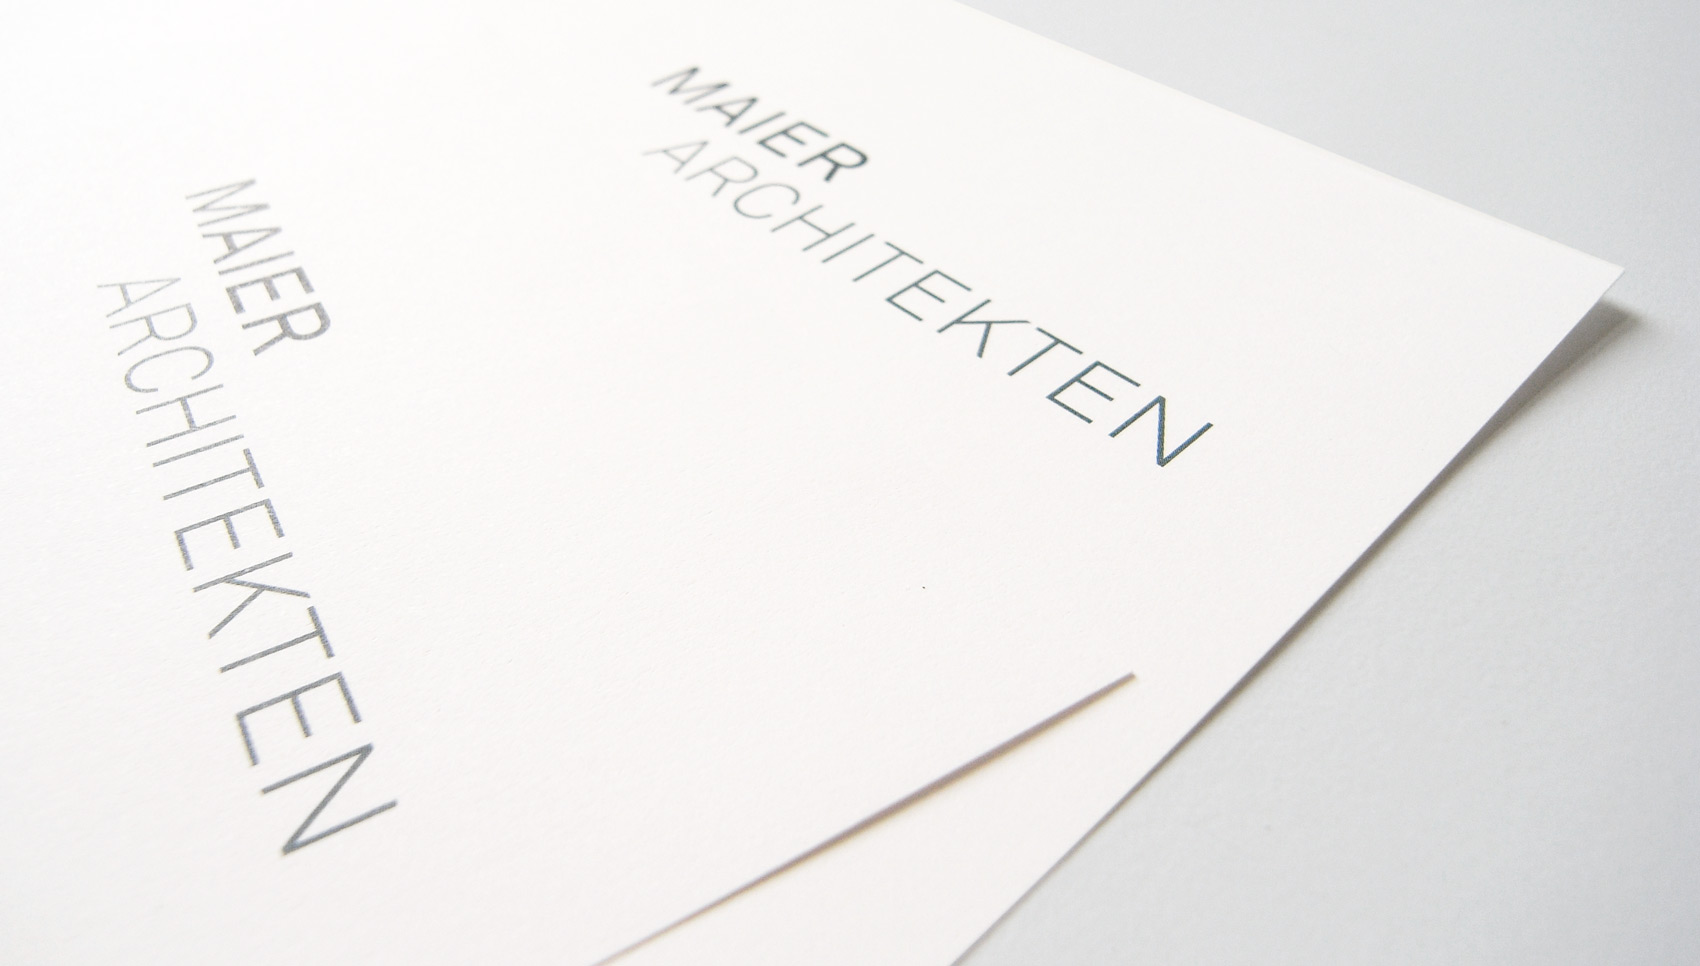 Maier Architekten Corporate Design